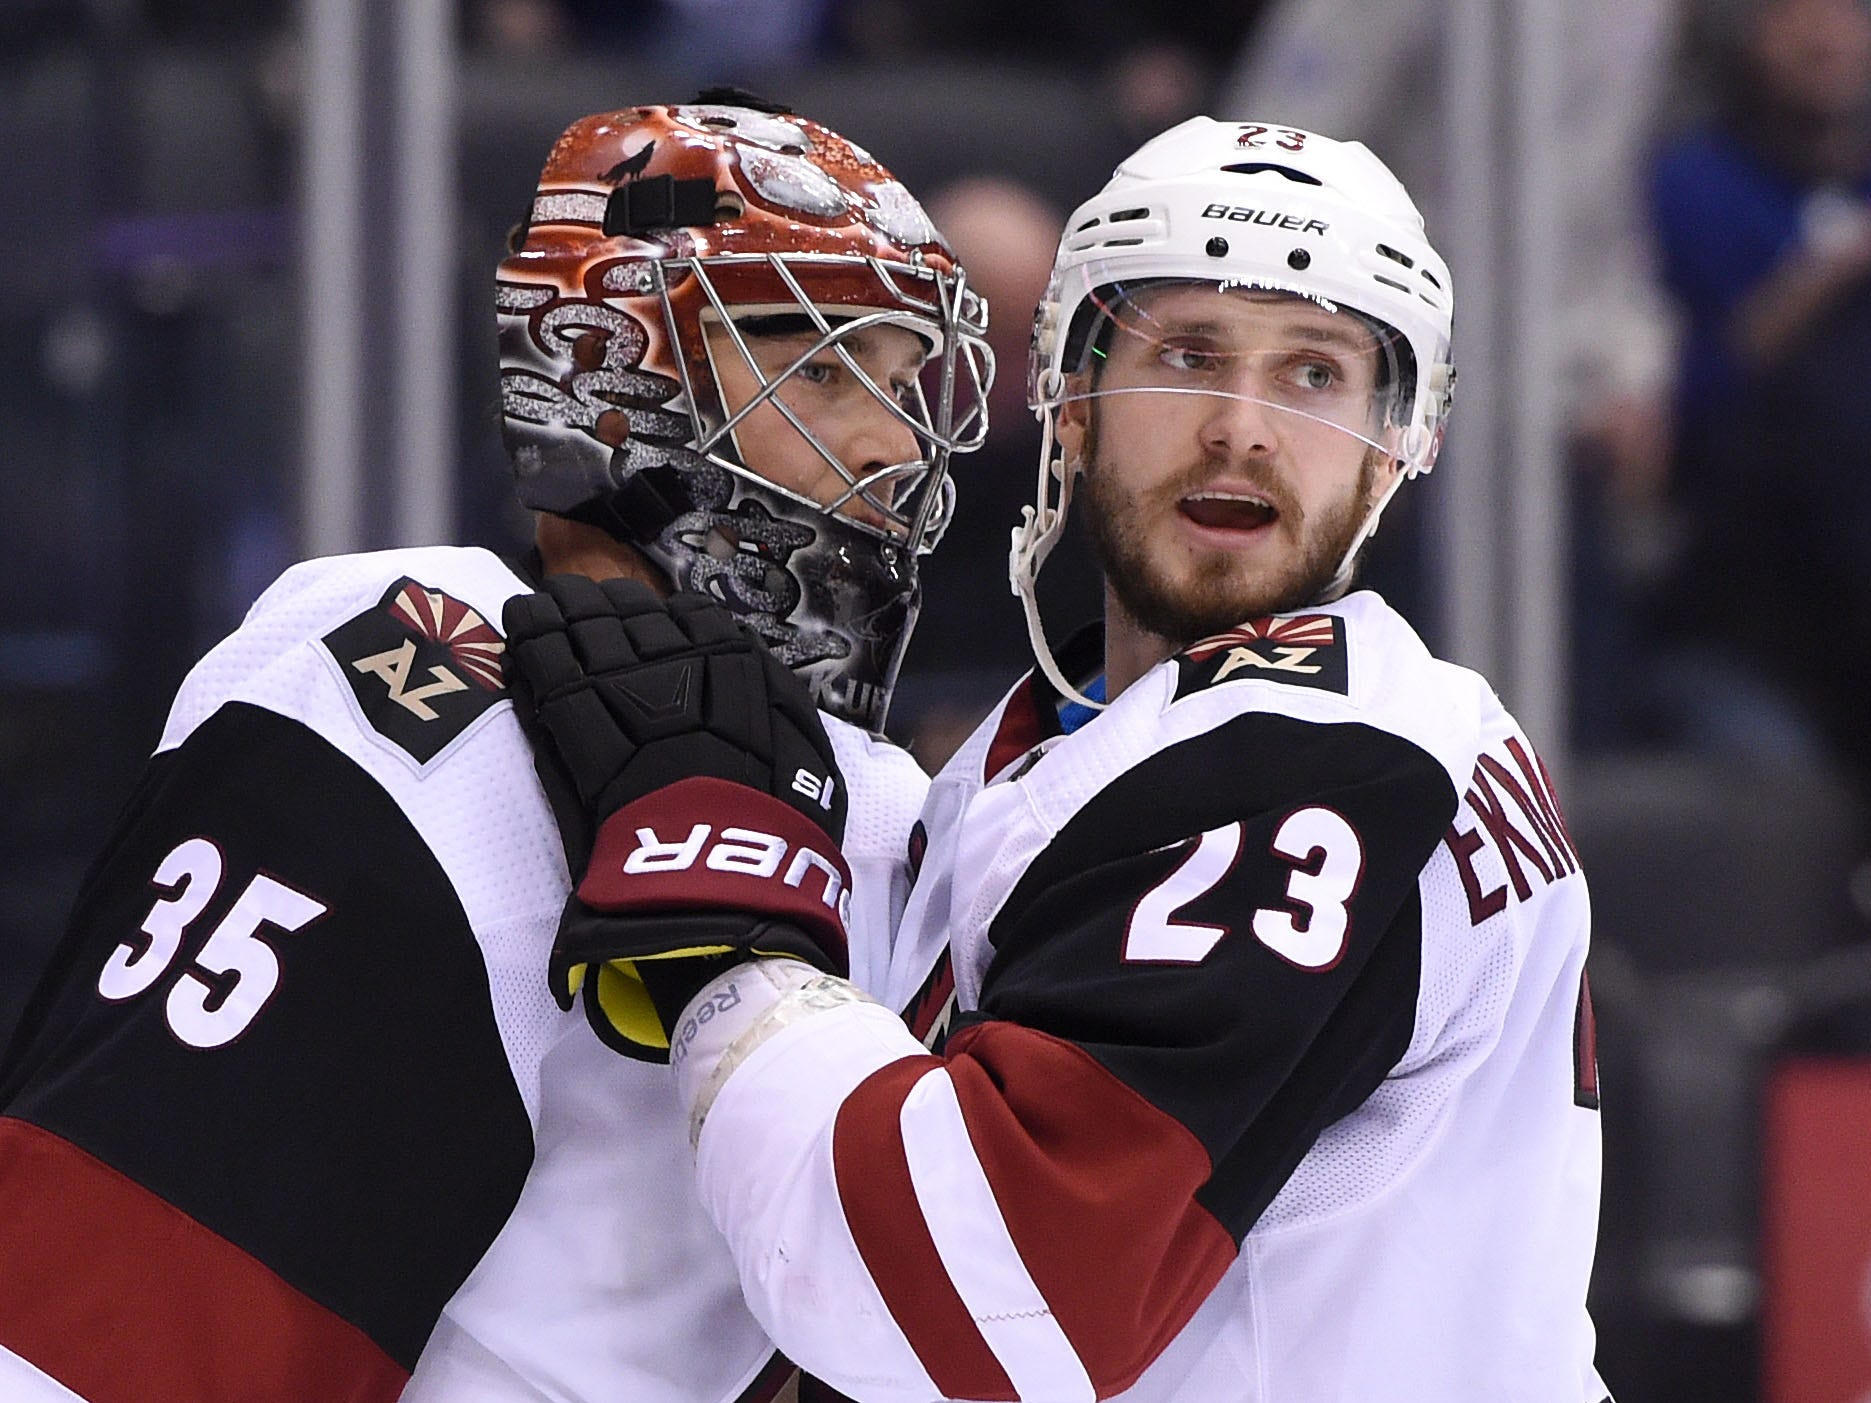 Jan 20, 2019; Toronto, Ontario, CAN;  Arizona Coyotes goalie Darcy Kuemper (35) is greeted by defenceman Oliver Ekman-Larsson (23) after a win over Toronto Maple Leafs at Scotiabank Arena. Mandatory Credit: Dan Hamilton-USA TODAY Sports